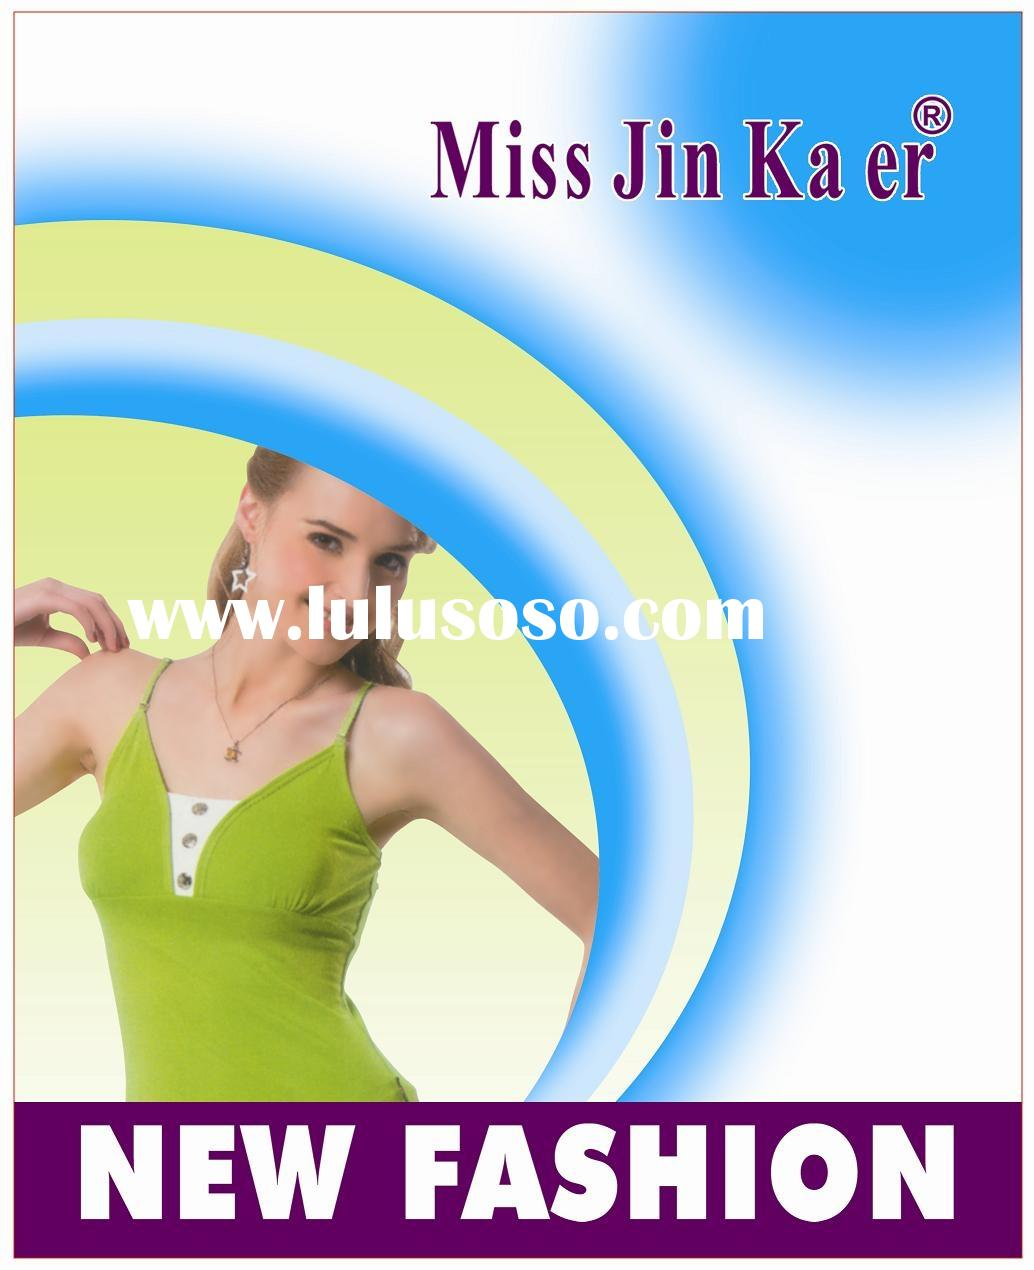 wholesales high quality competitive ladies camisoles, ,ladies underwear,ladies lingerie